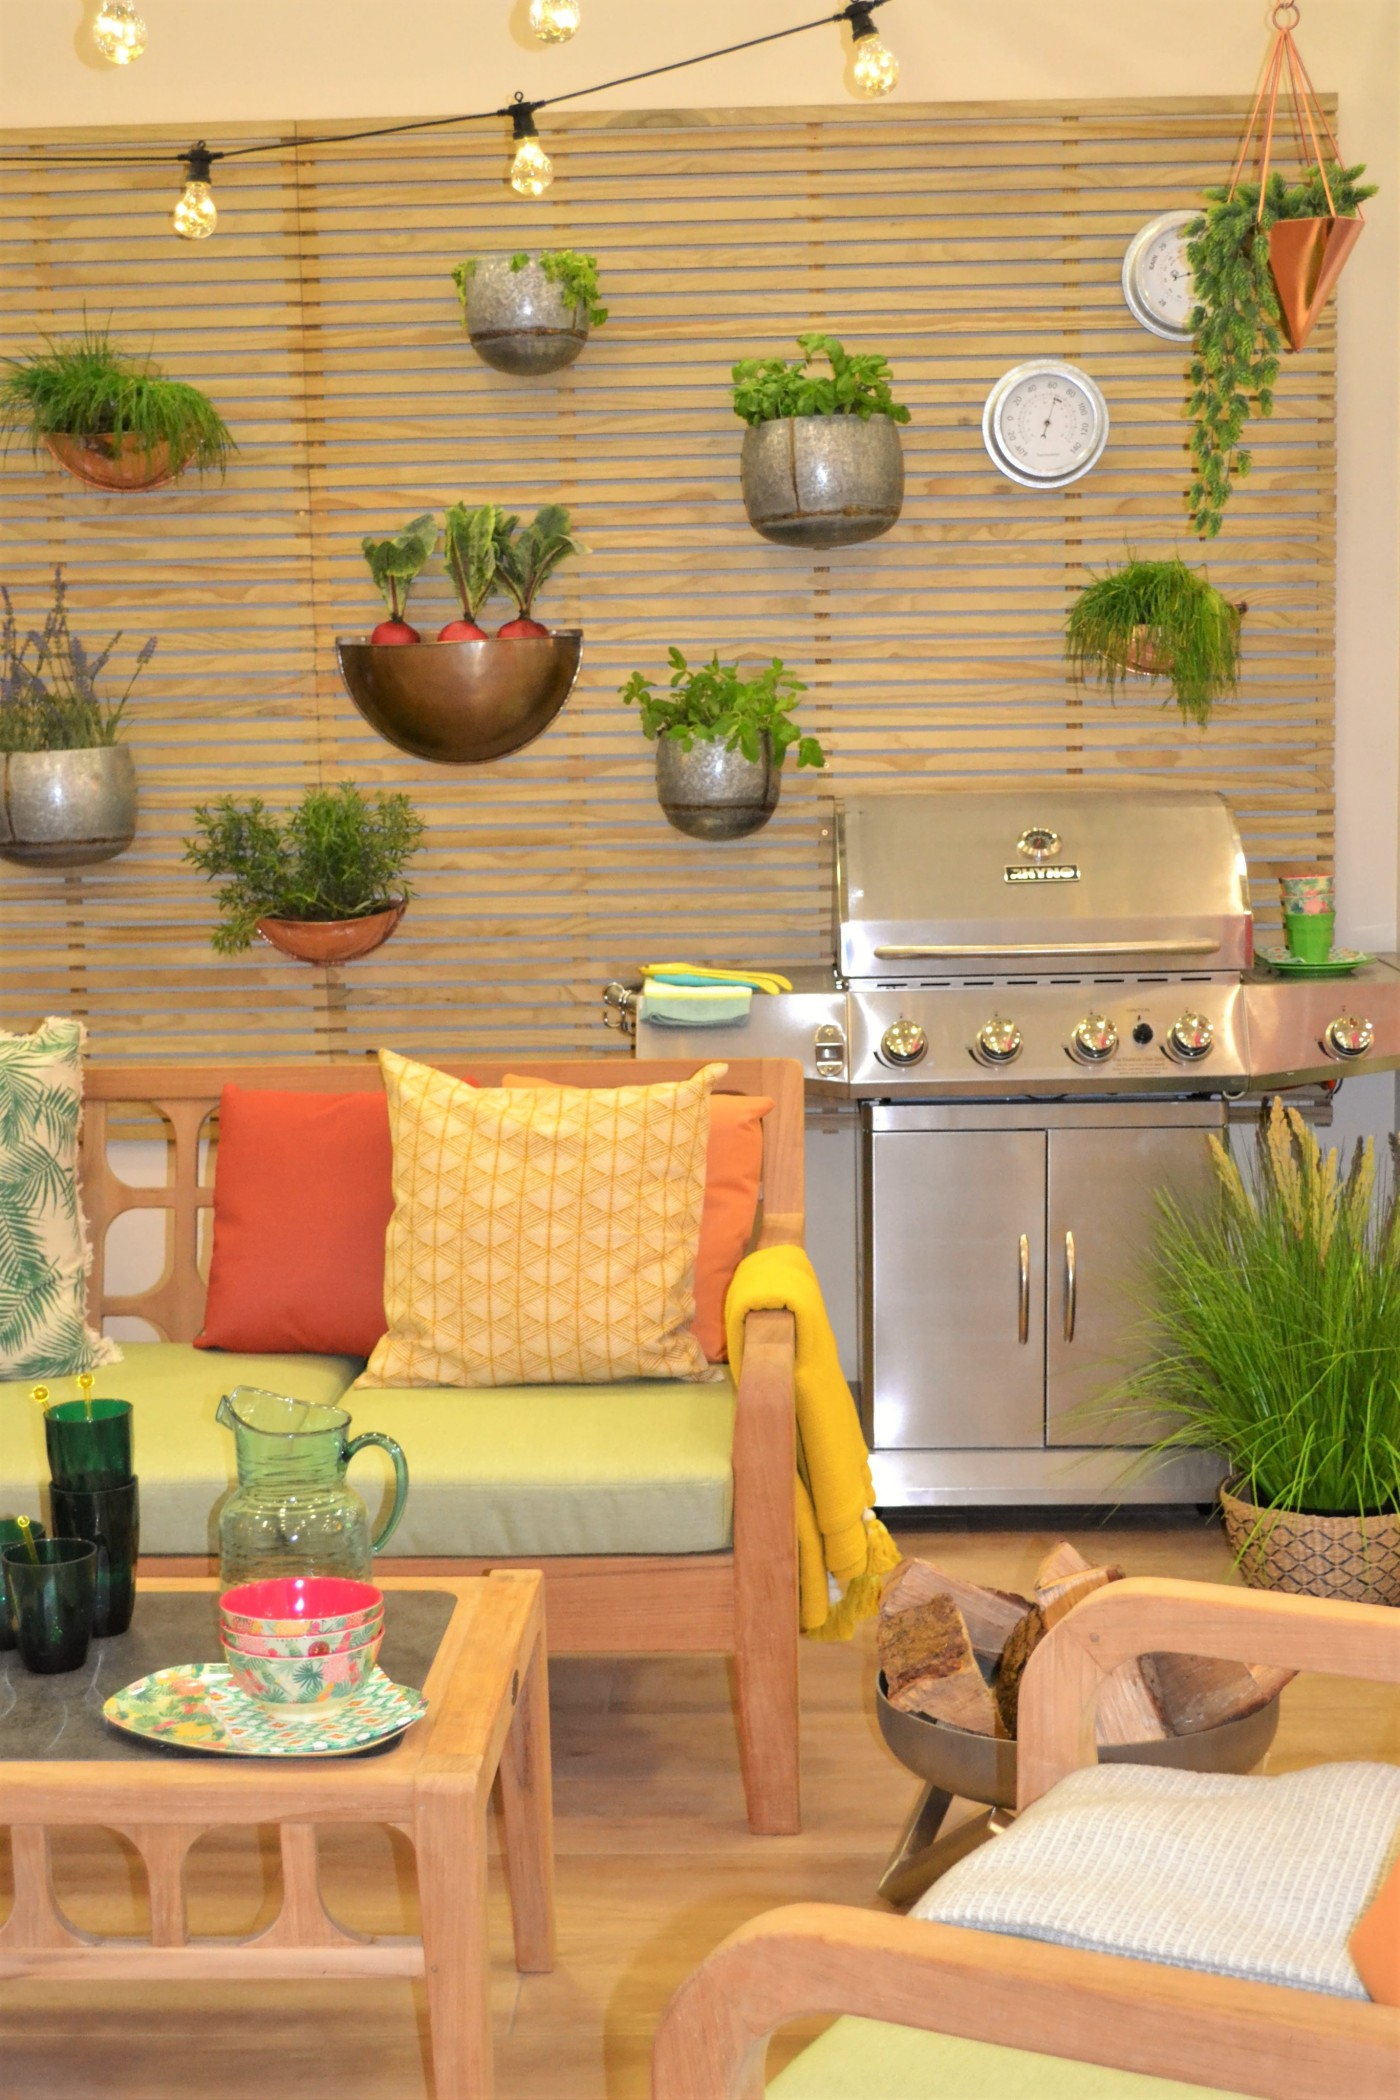 Ideal Home Show 31